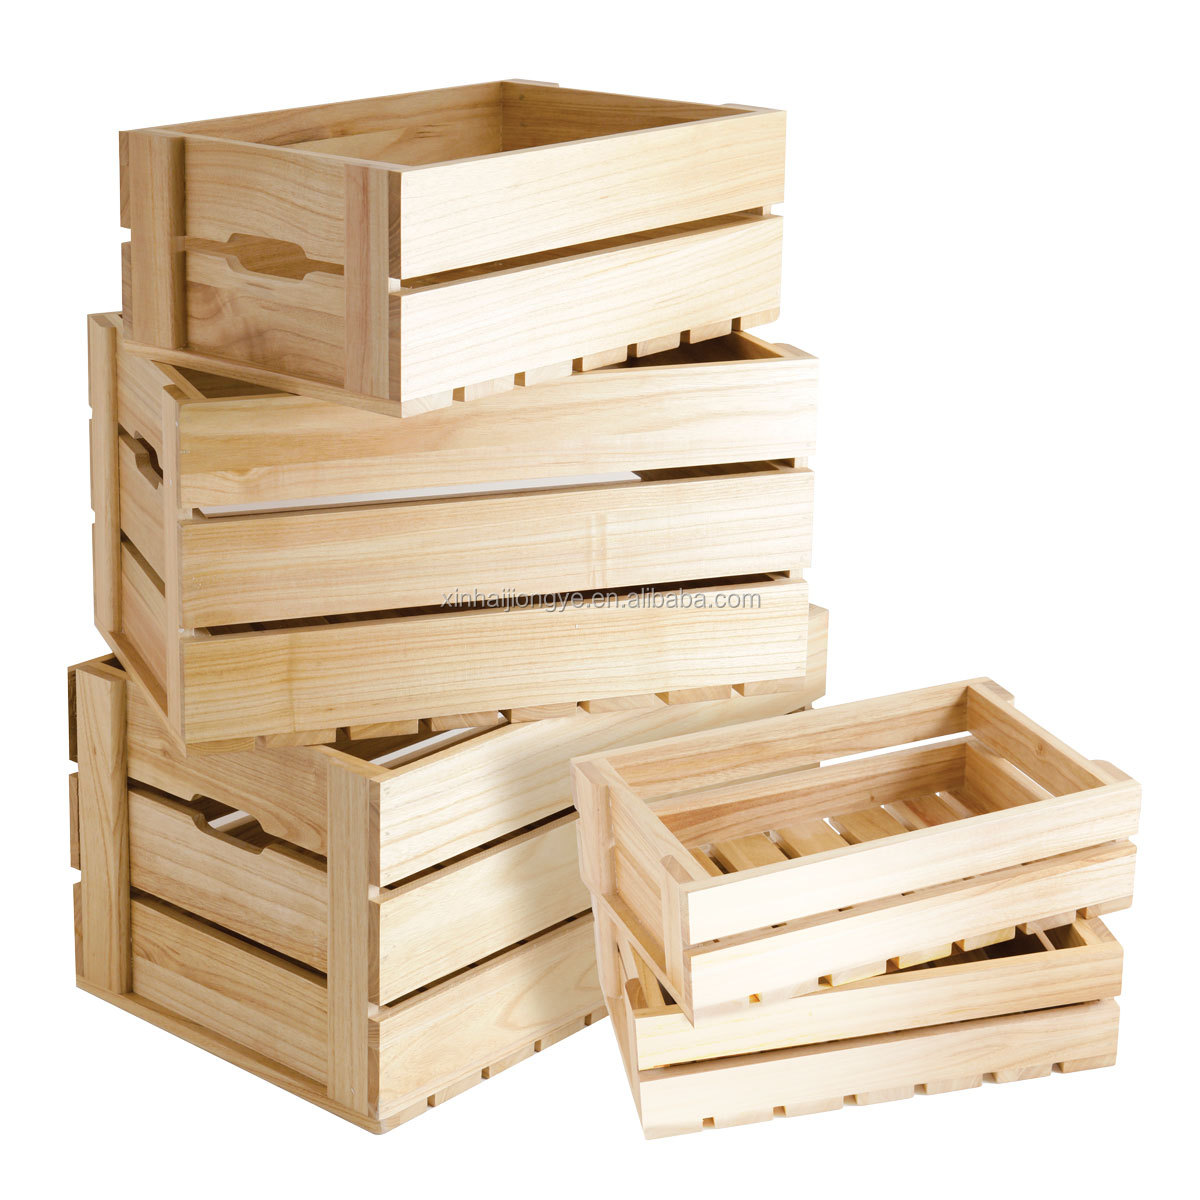 Hot selling styled wooden crate in natural color high for Wooden fruit crates